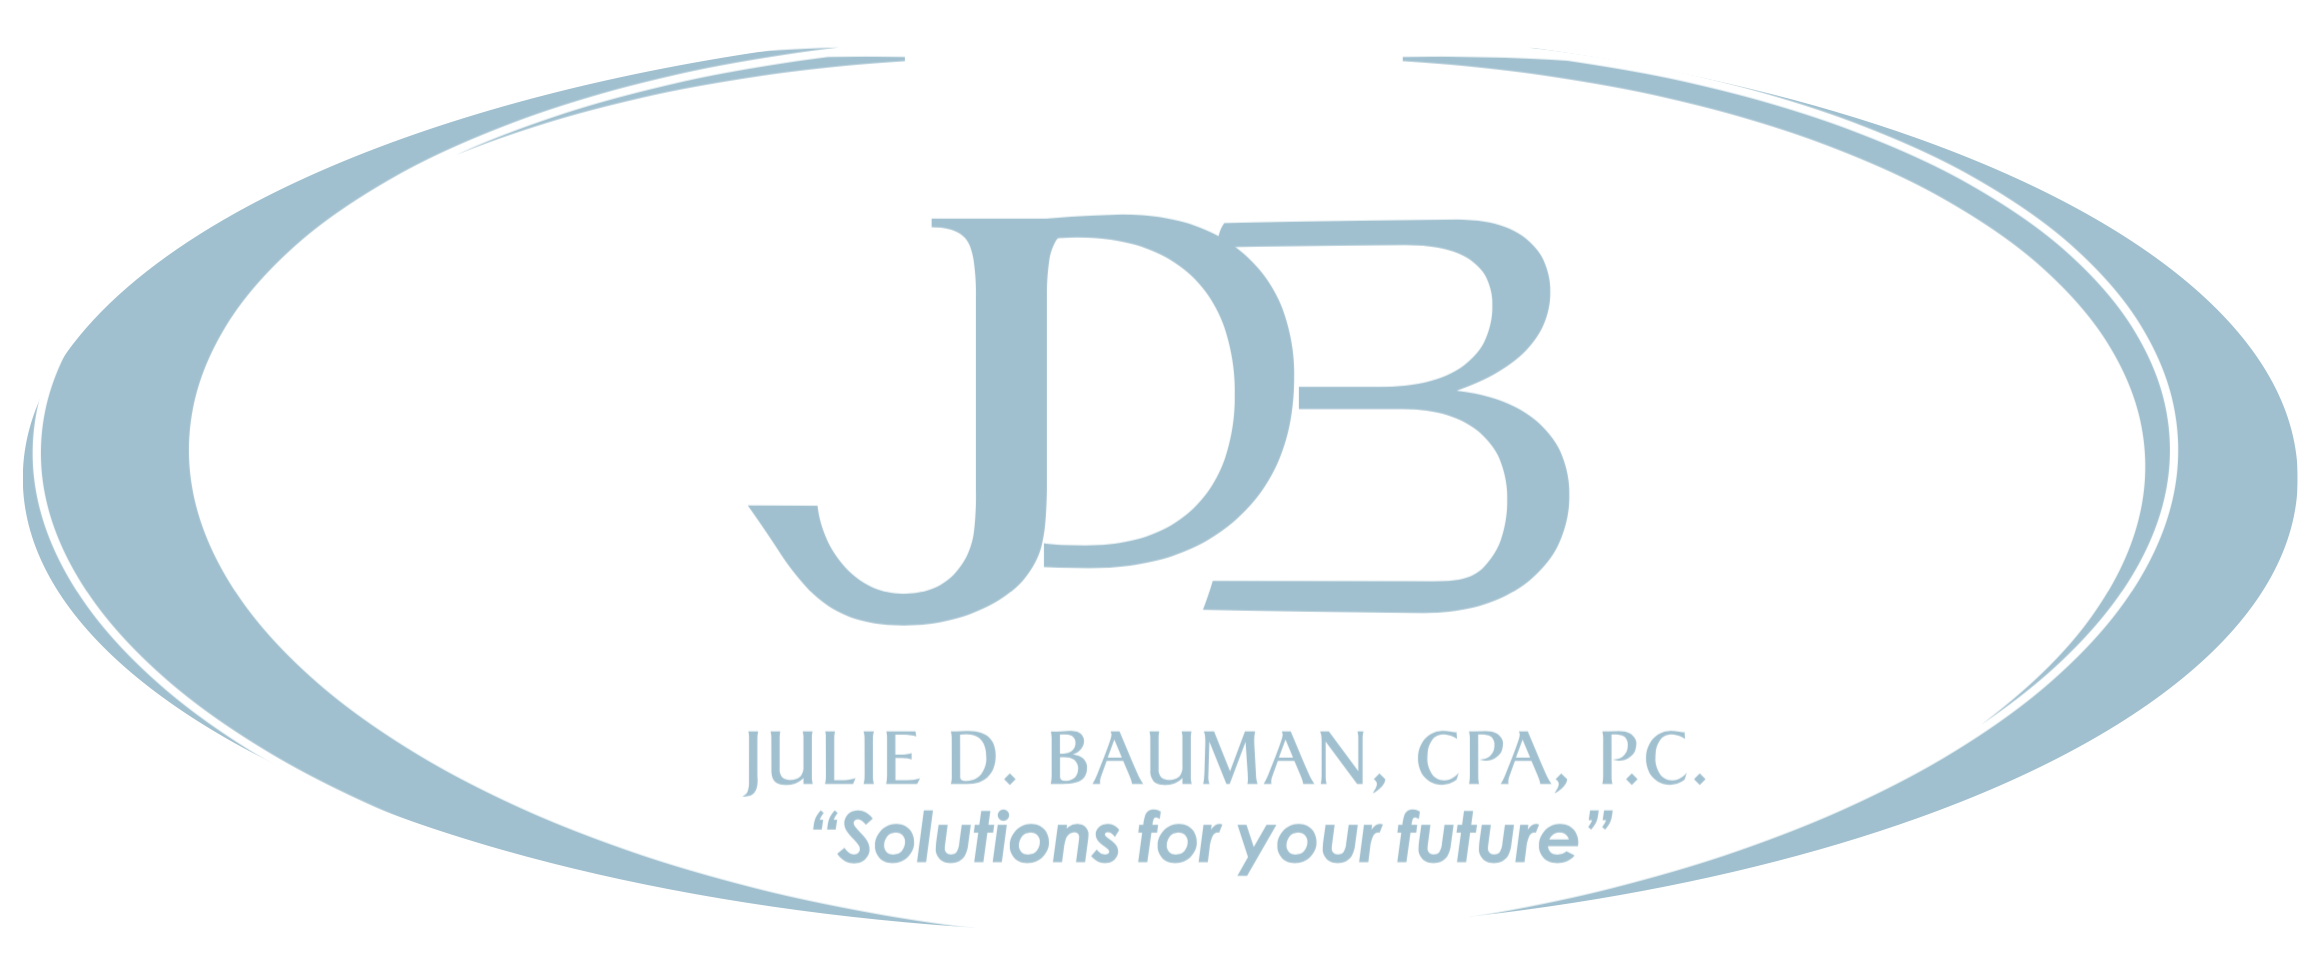 Virtual Accounting Firm | Business Services Page | Julie D. Bauman, CPA, PC